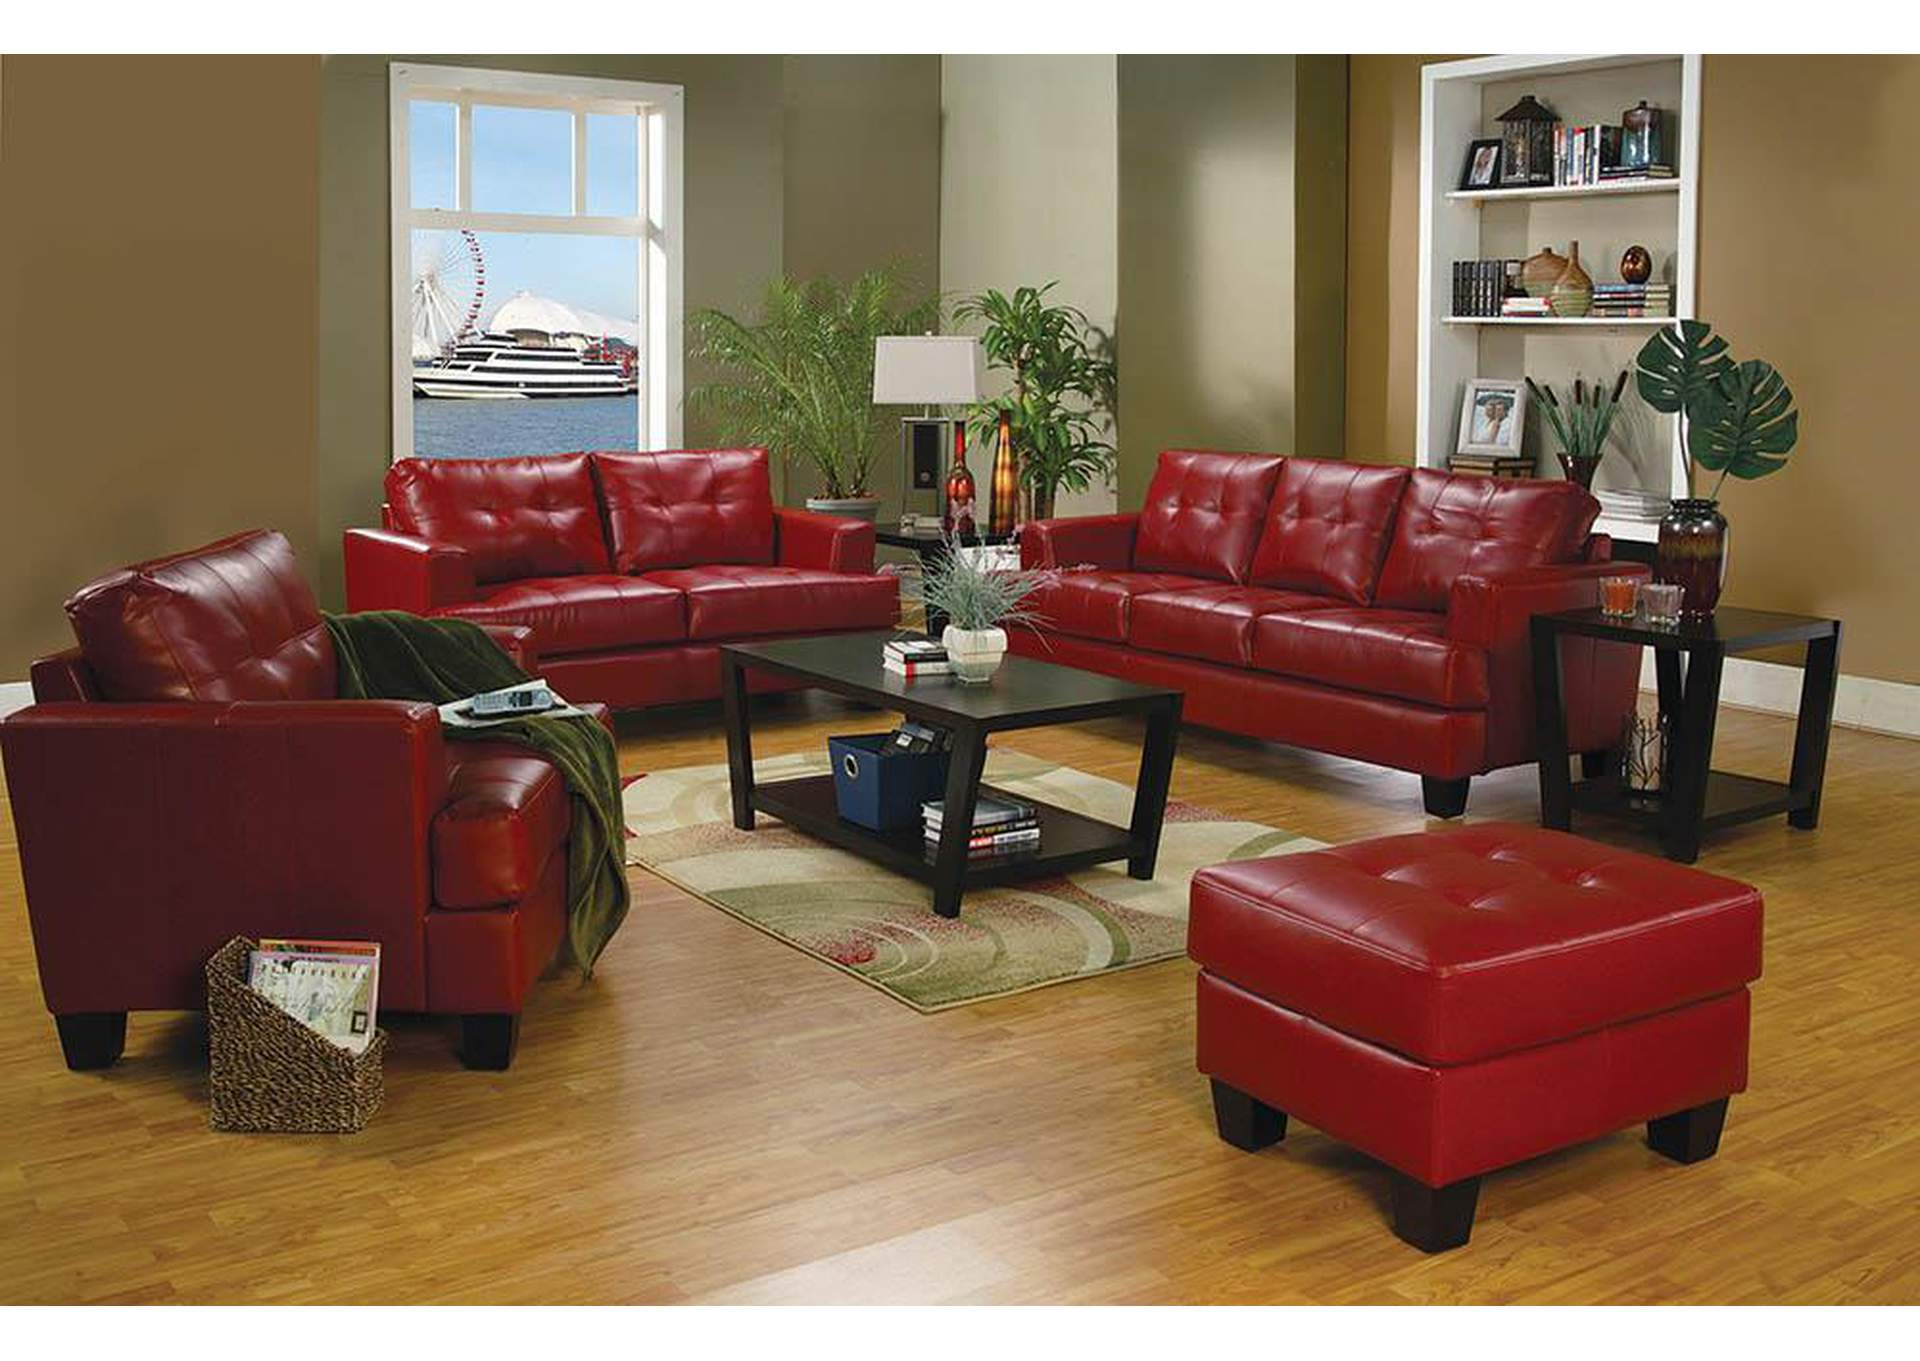 Furniture Stores In Miami 1 Discount Ashley Home Furniture Samuel Red Bonded Leather Love Seat